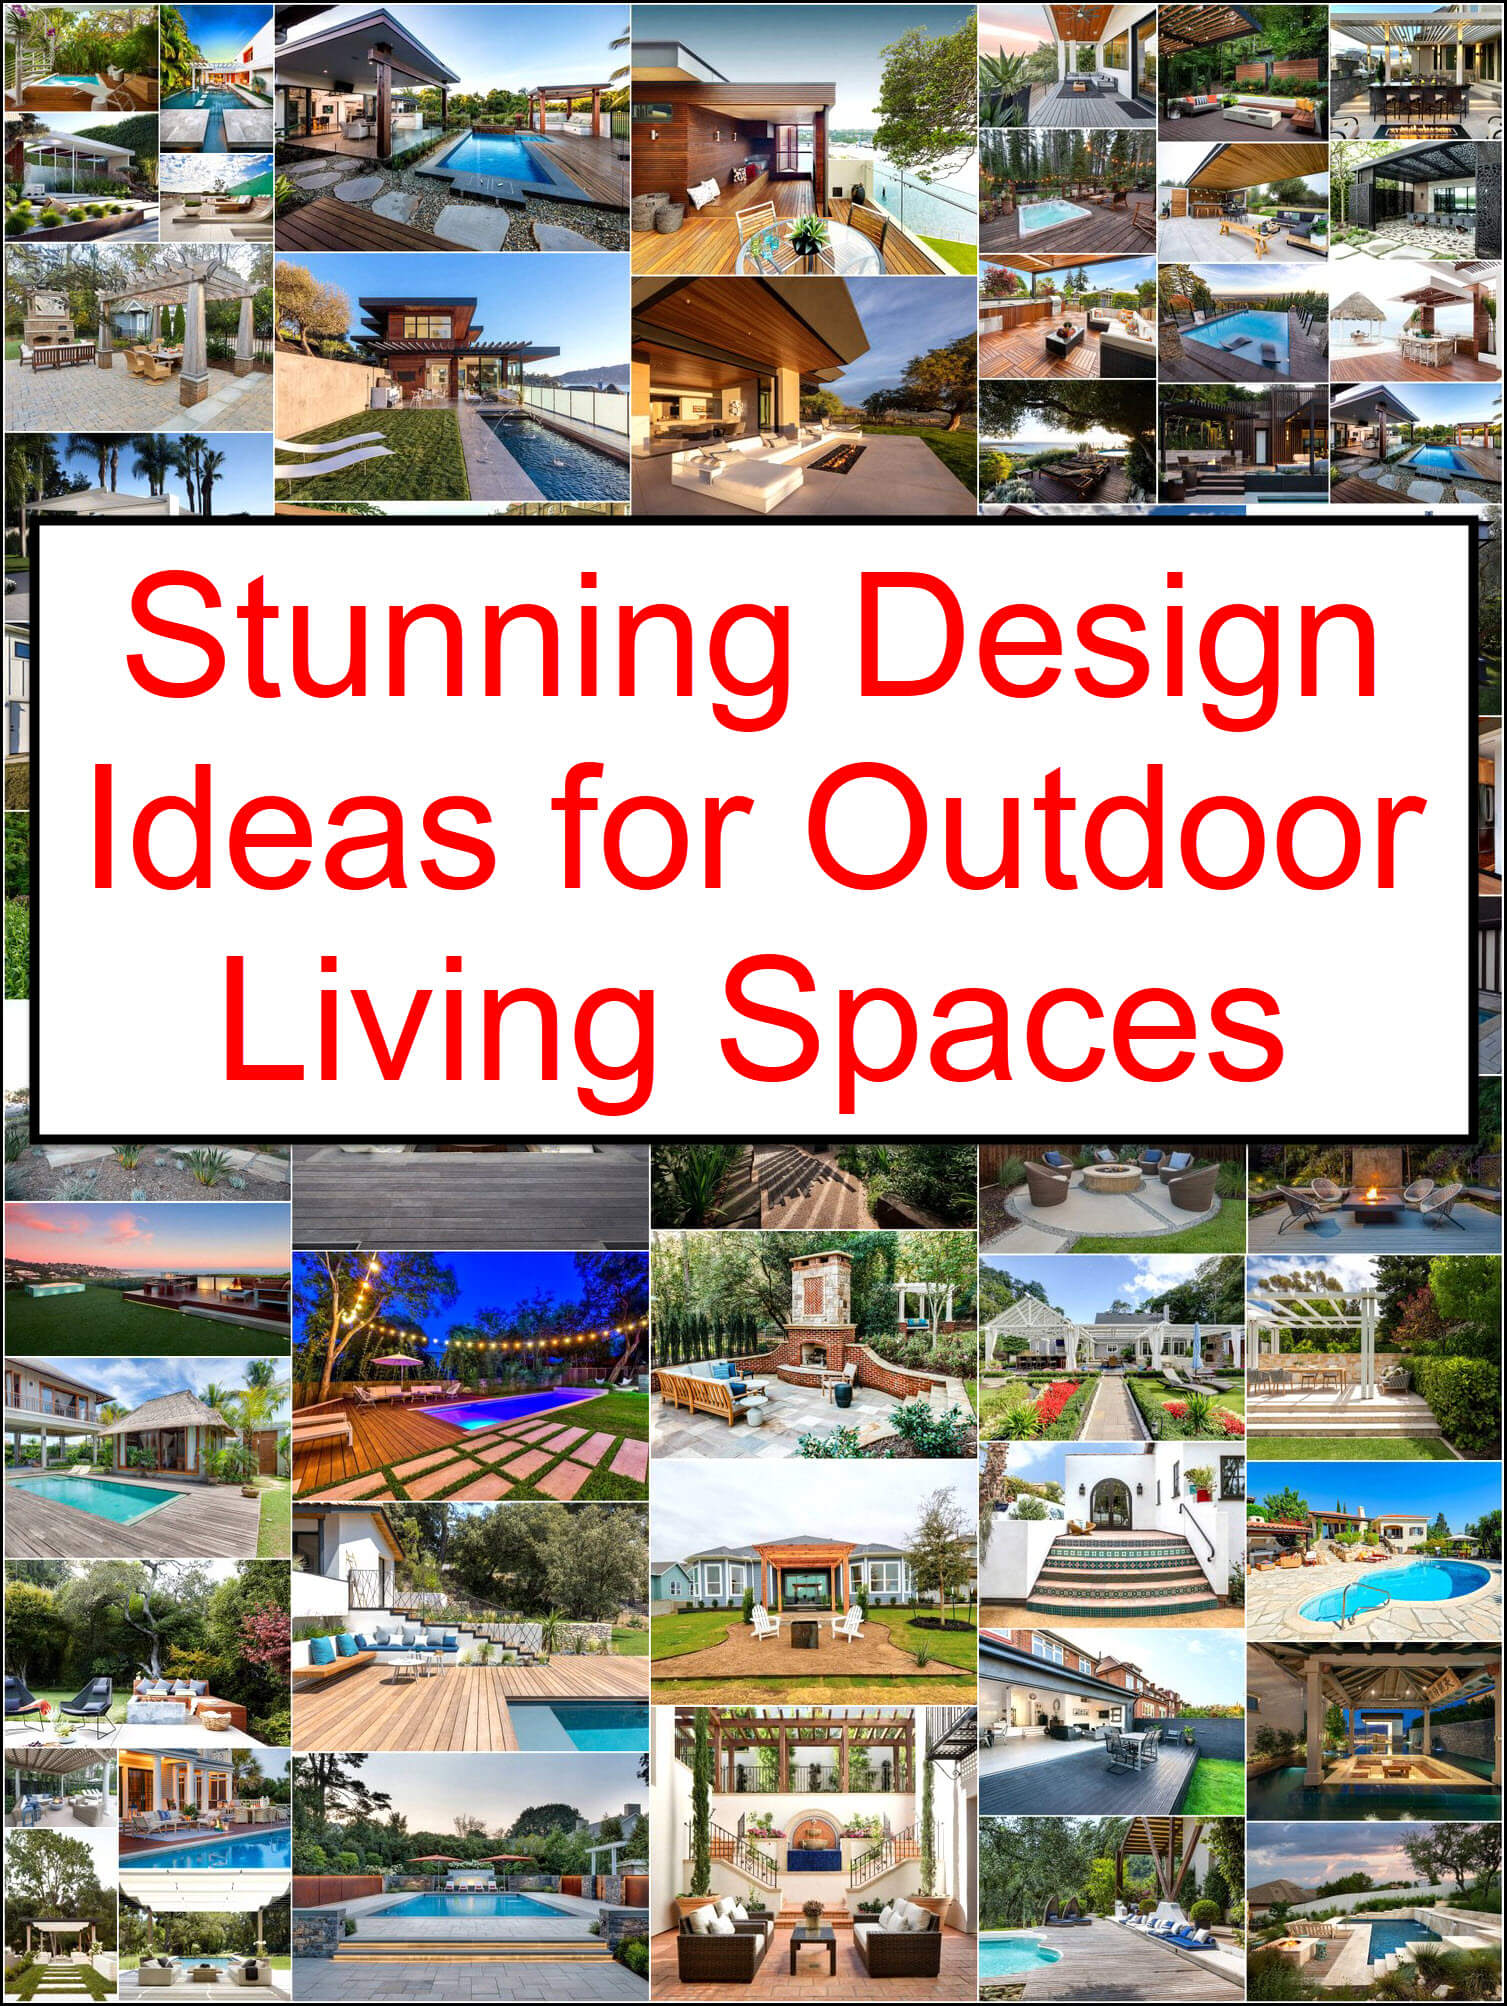 Stunning Design Ideas For Outdoor Living Spaces Outdoor And Patio Ideas Designs And Diy Plans